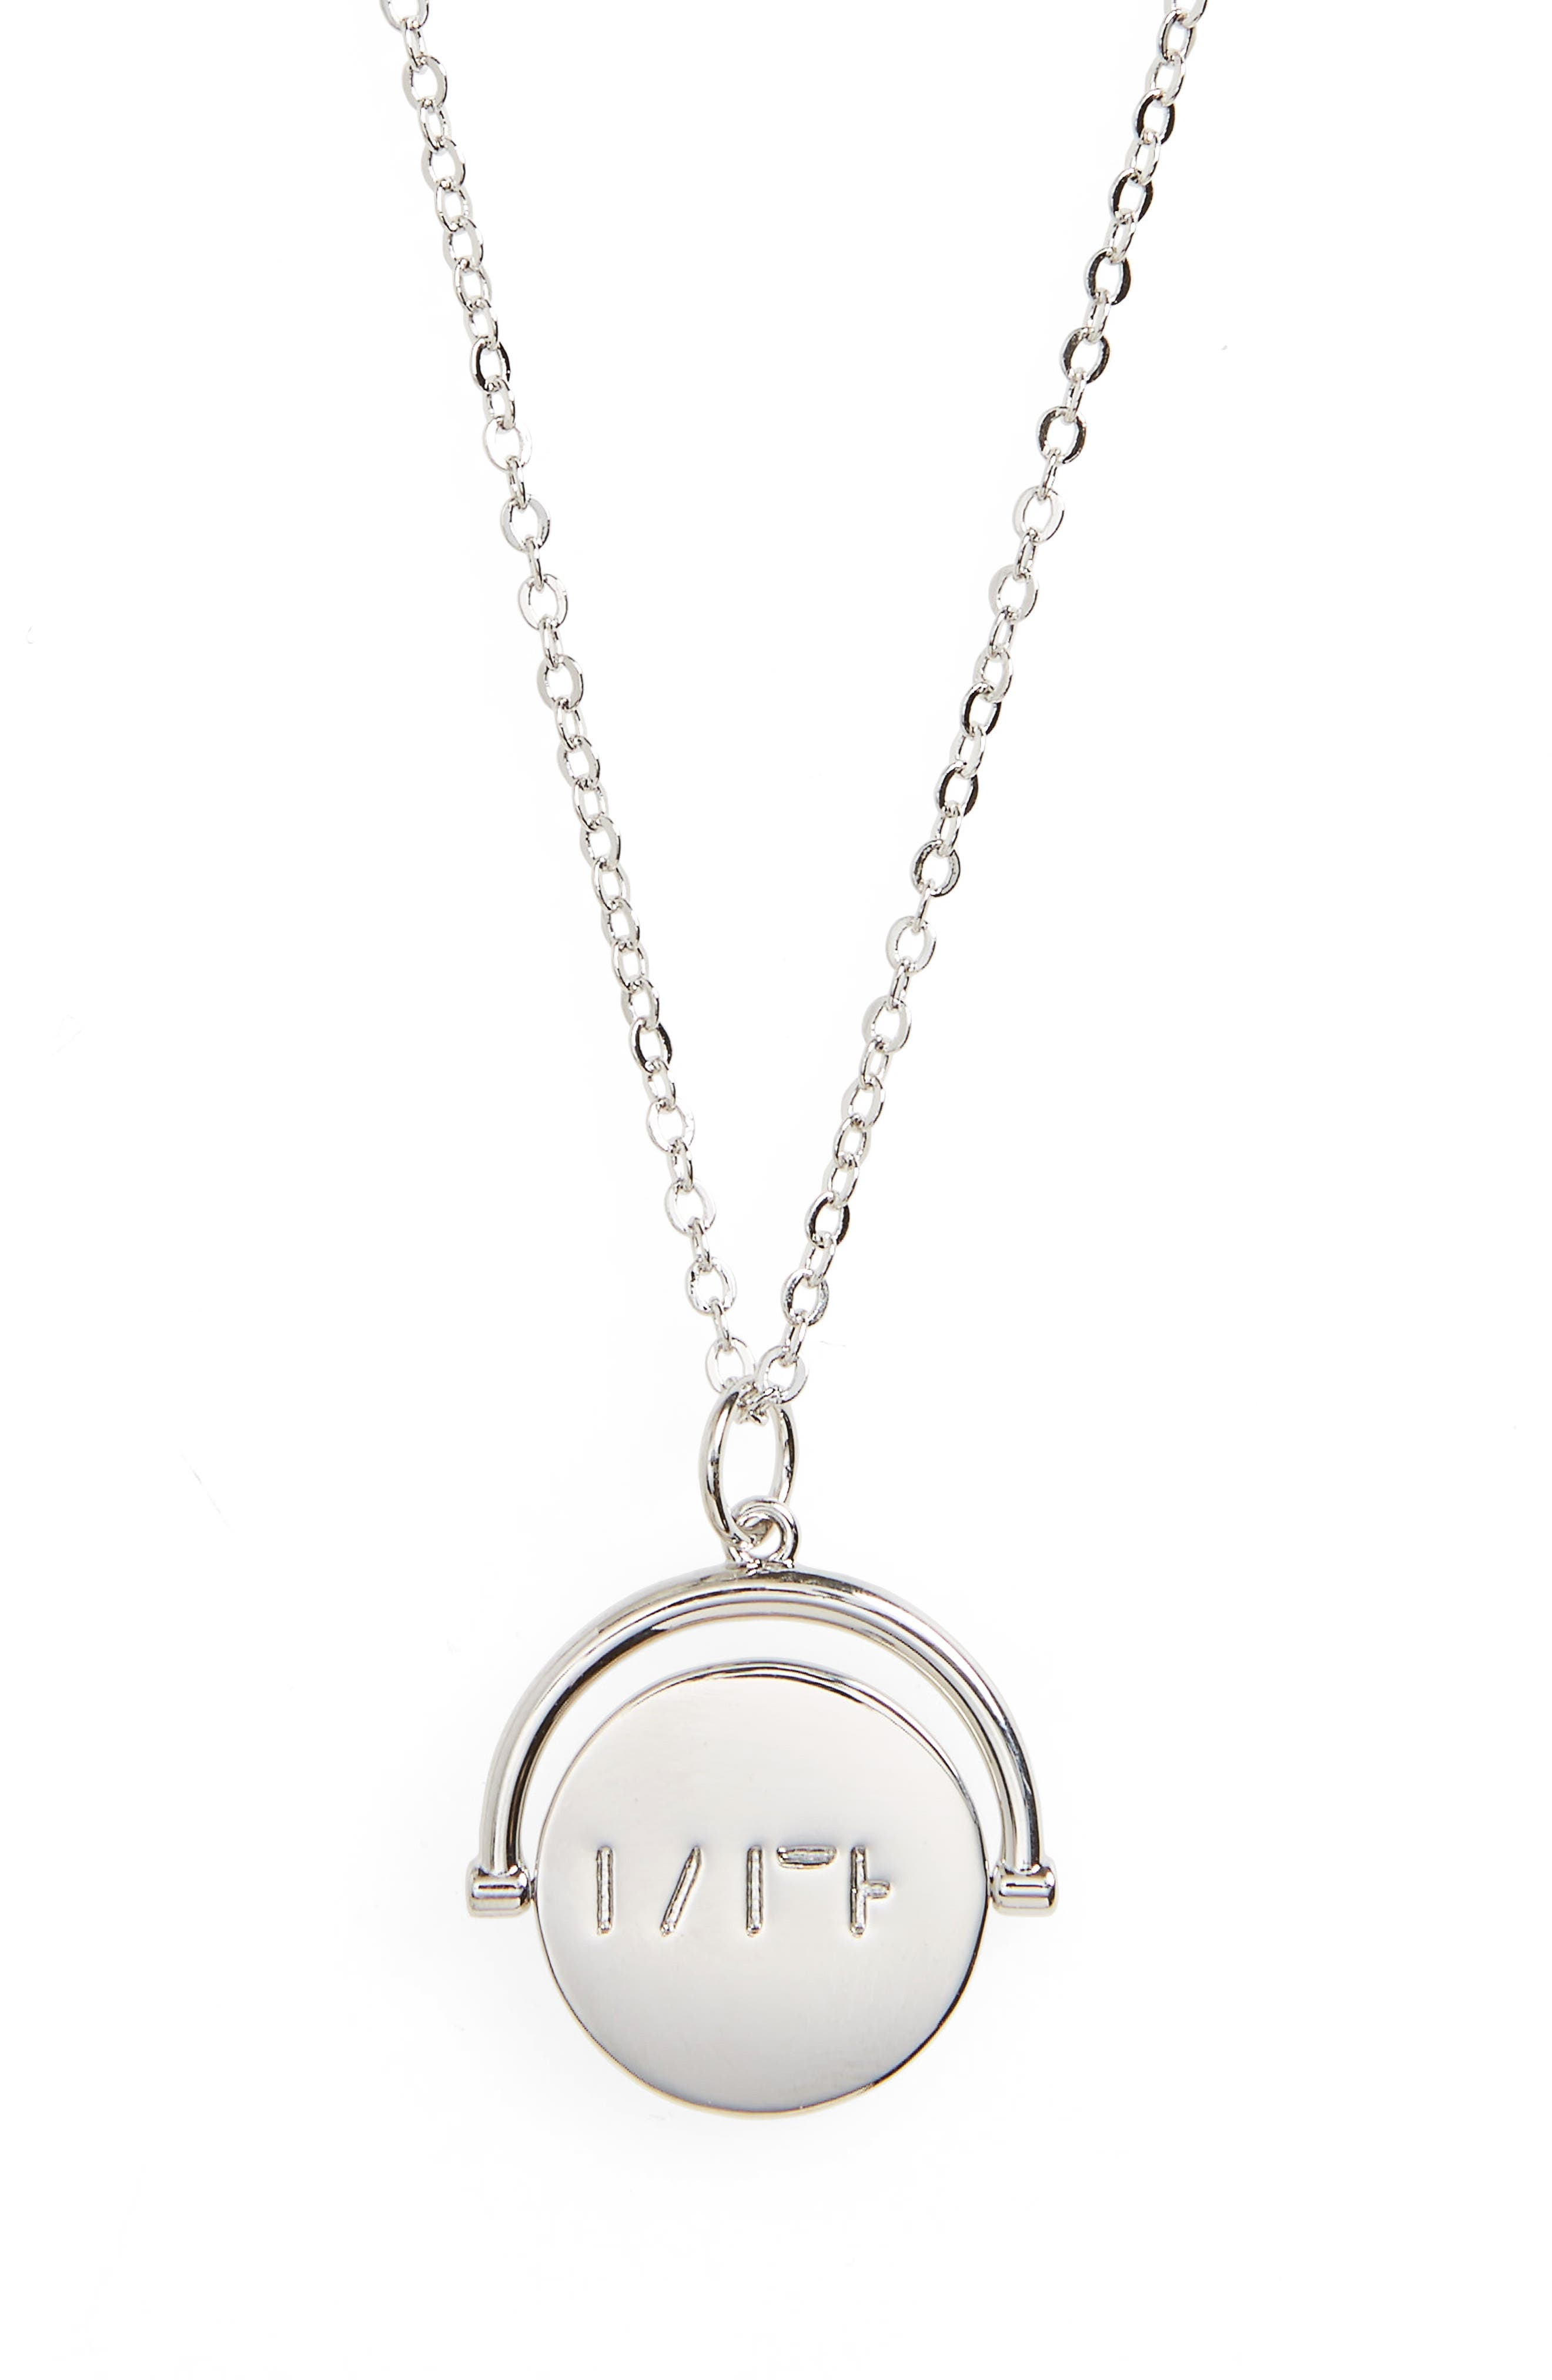 Faith Love Code Charm Necklace,                         Main,                         color, Faith/ Silver